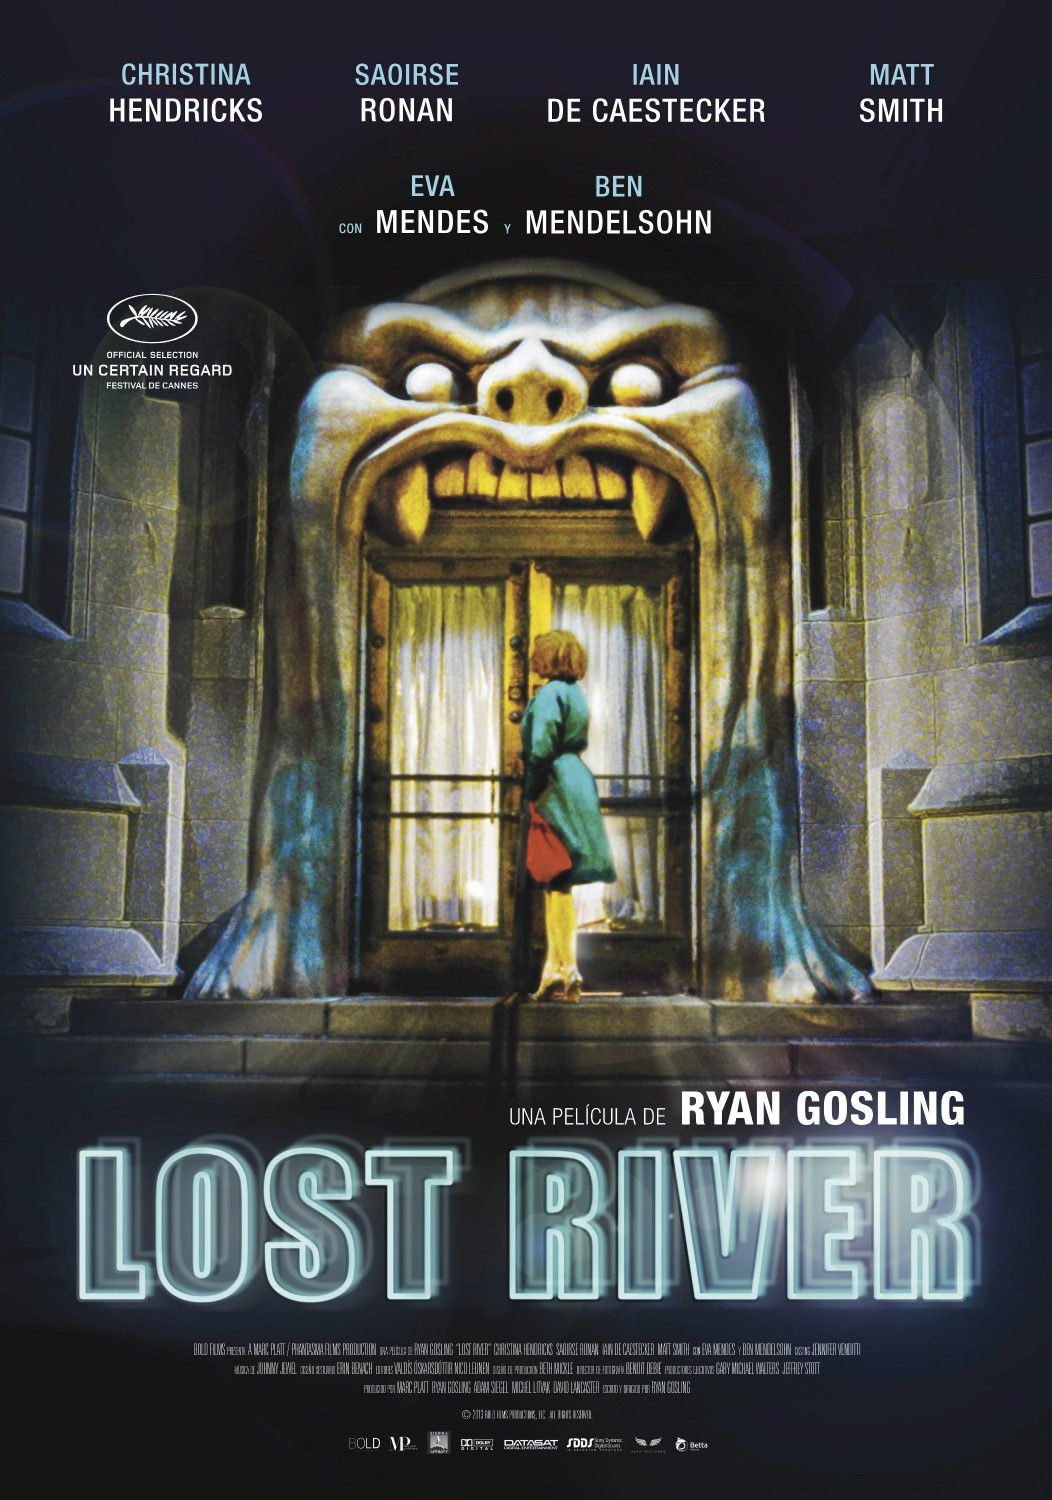 Lost river - film poster - door